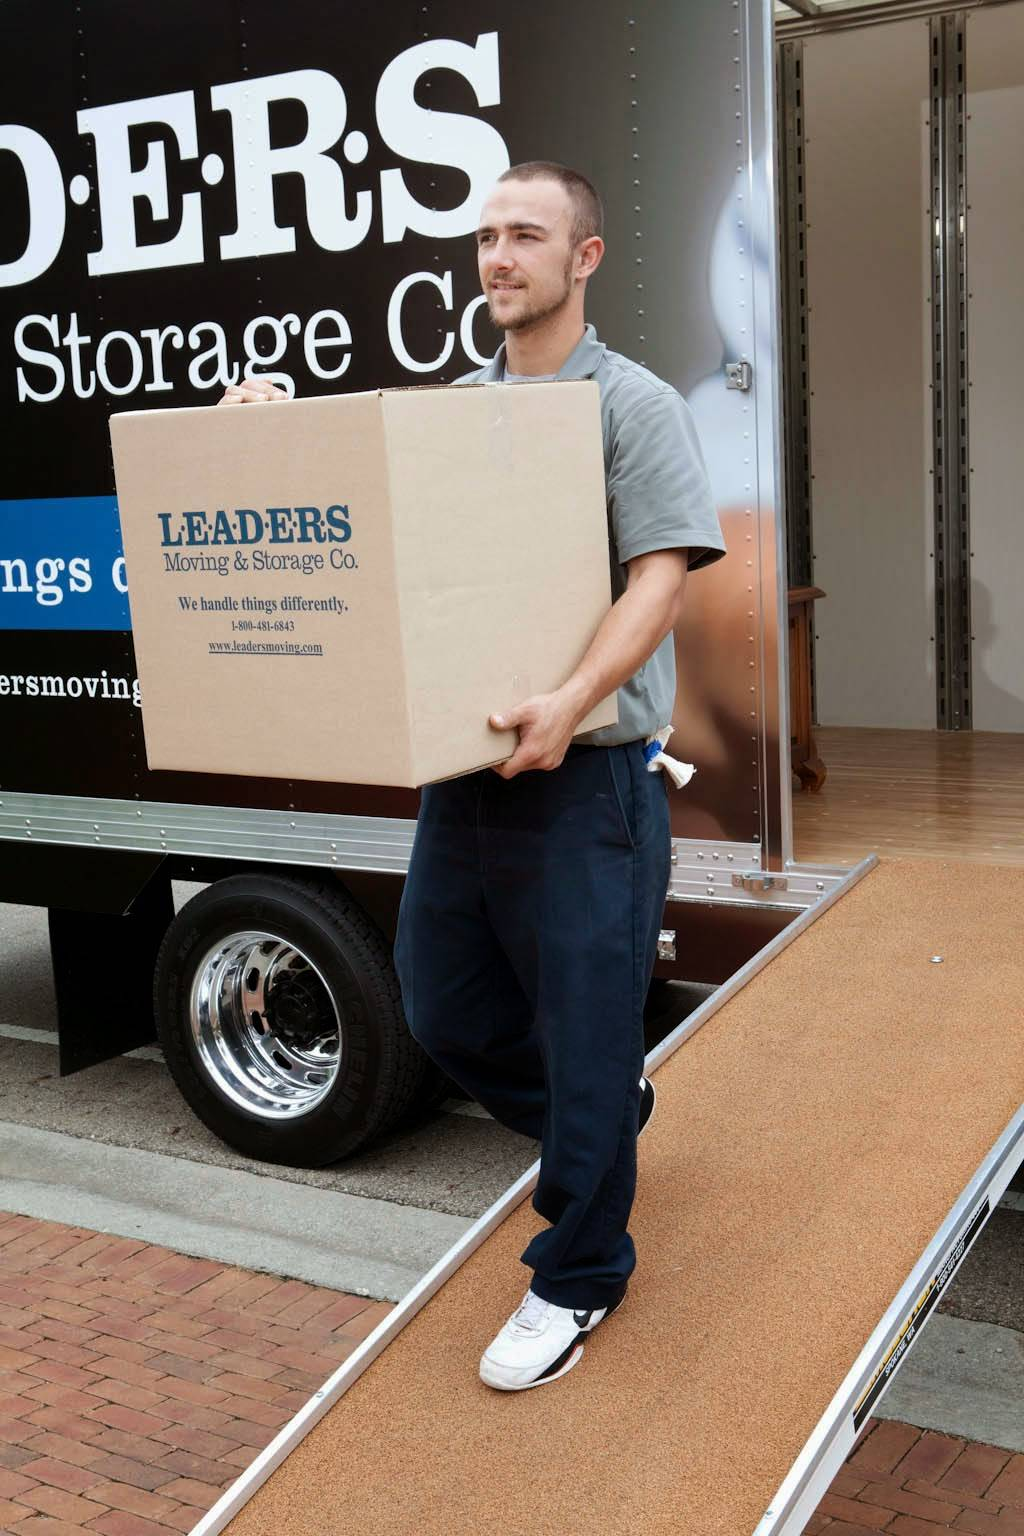 Leaders Moving & Storage Co. - moving company  | Photo 7 of 10 | Address: 4517 Industrial Pkwy, Cleveland, OH 44135, USA | Phone: (440) 497-4393